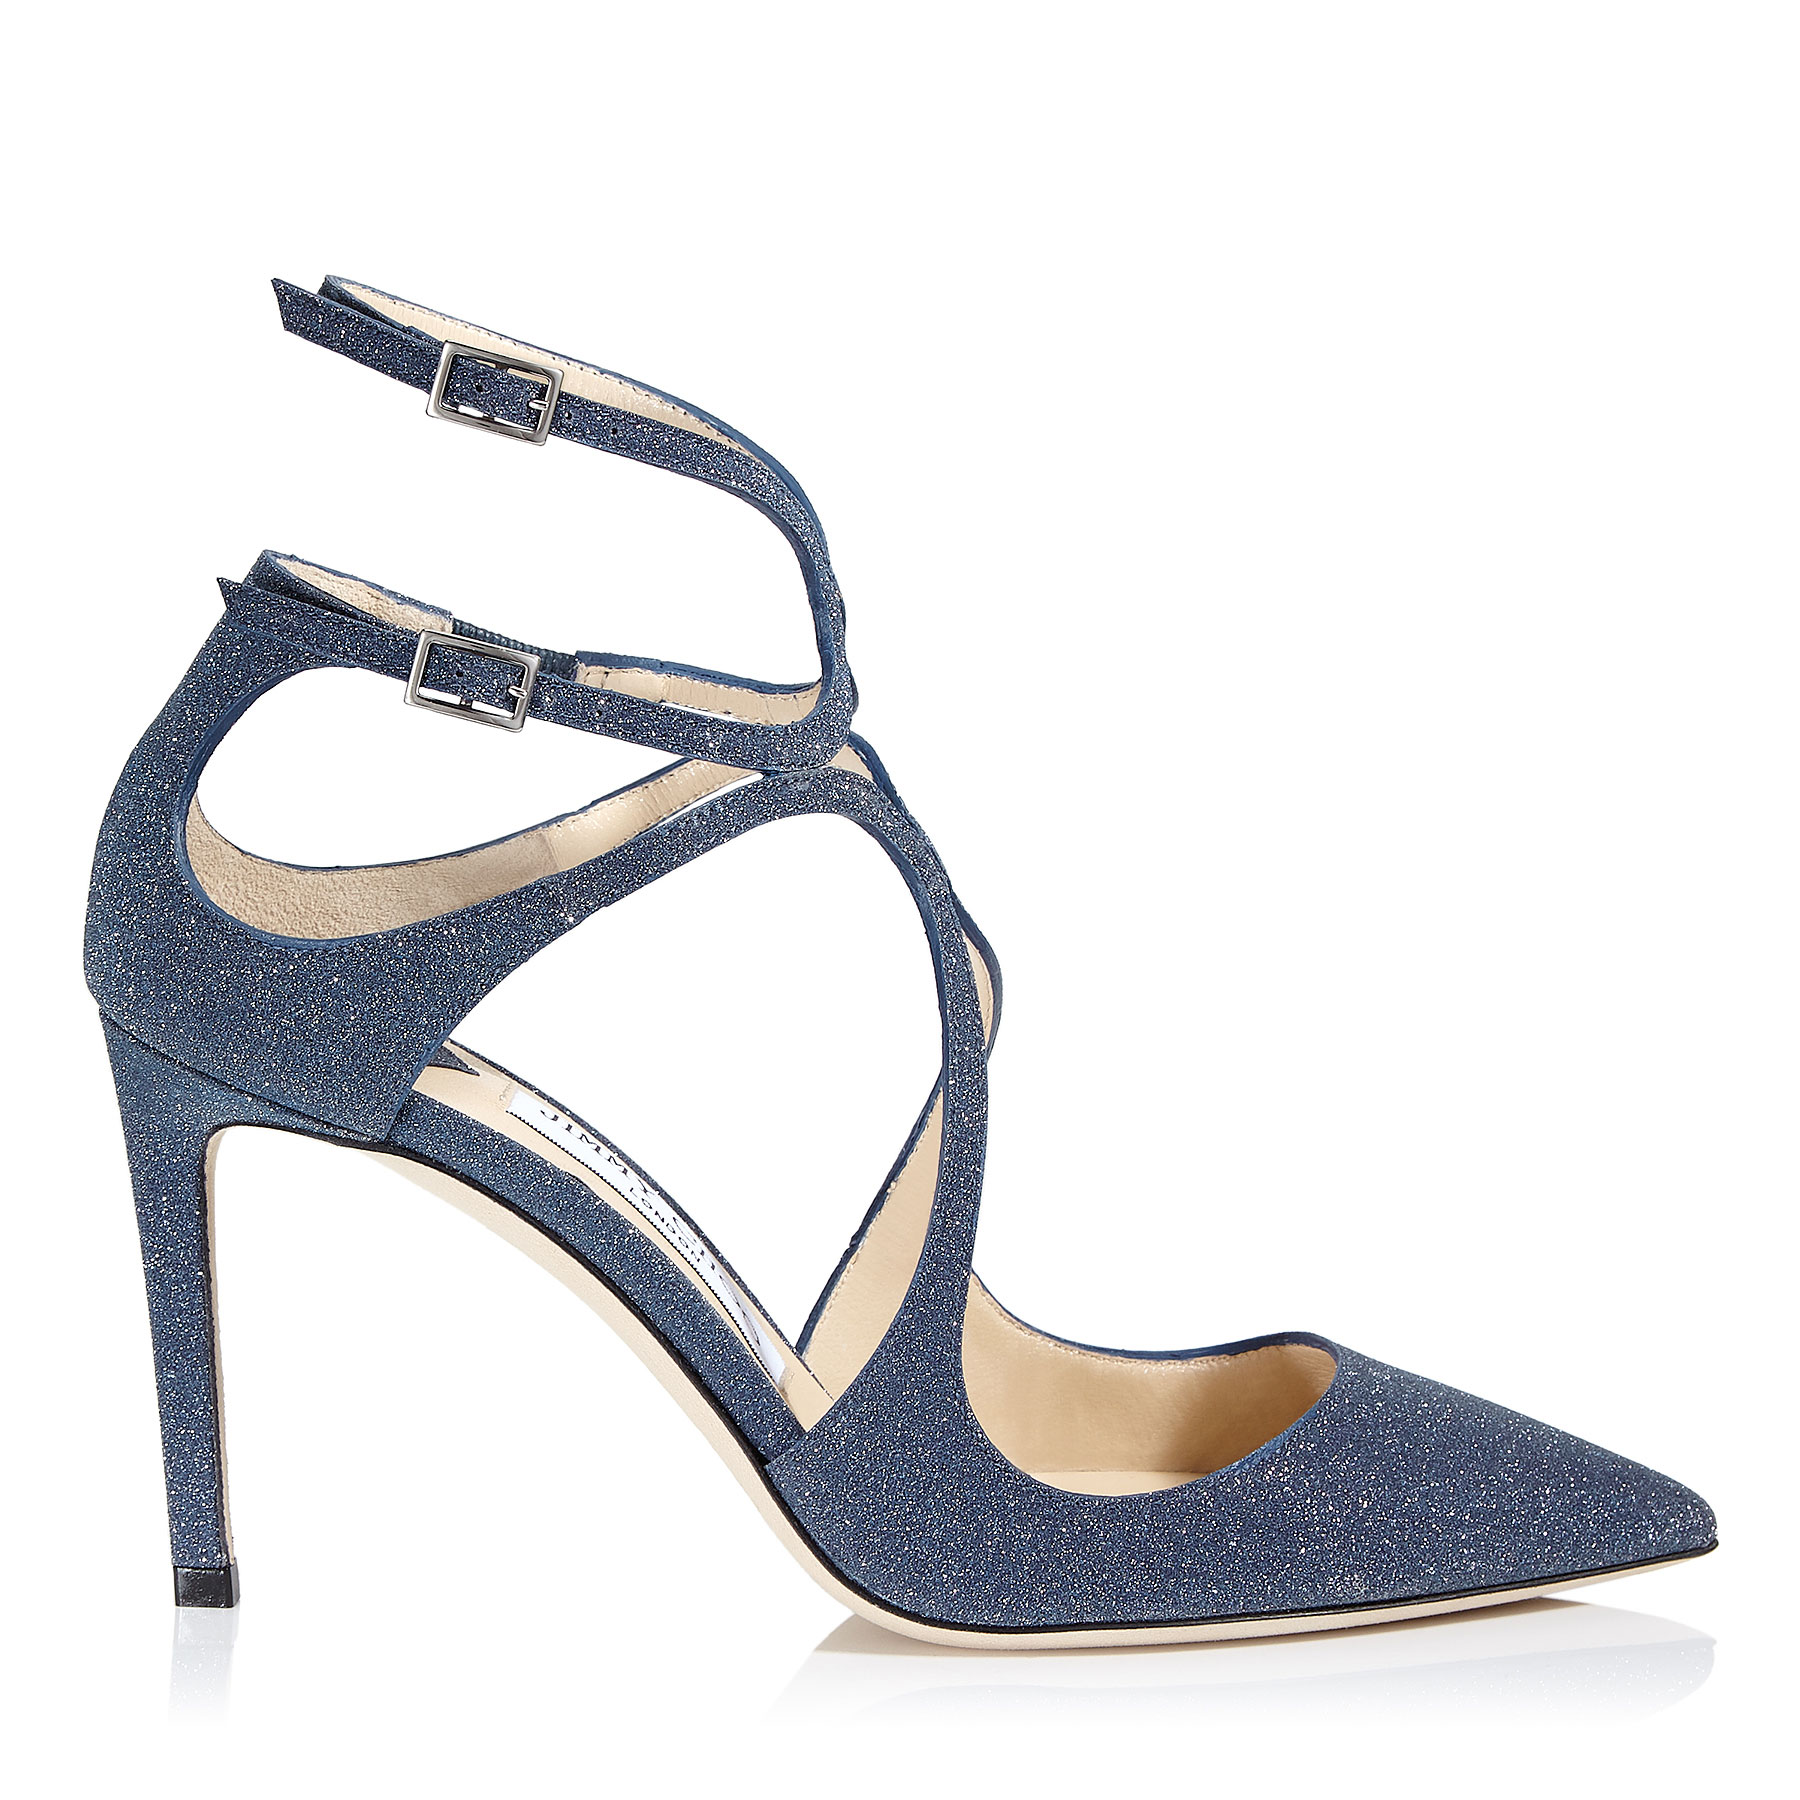 LANCER 85 Navy Fine Glitter Leather Pointy Toe Pumps